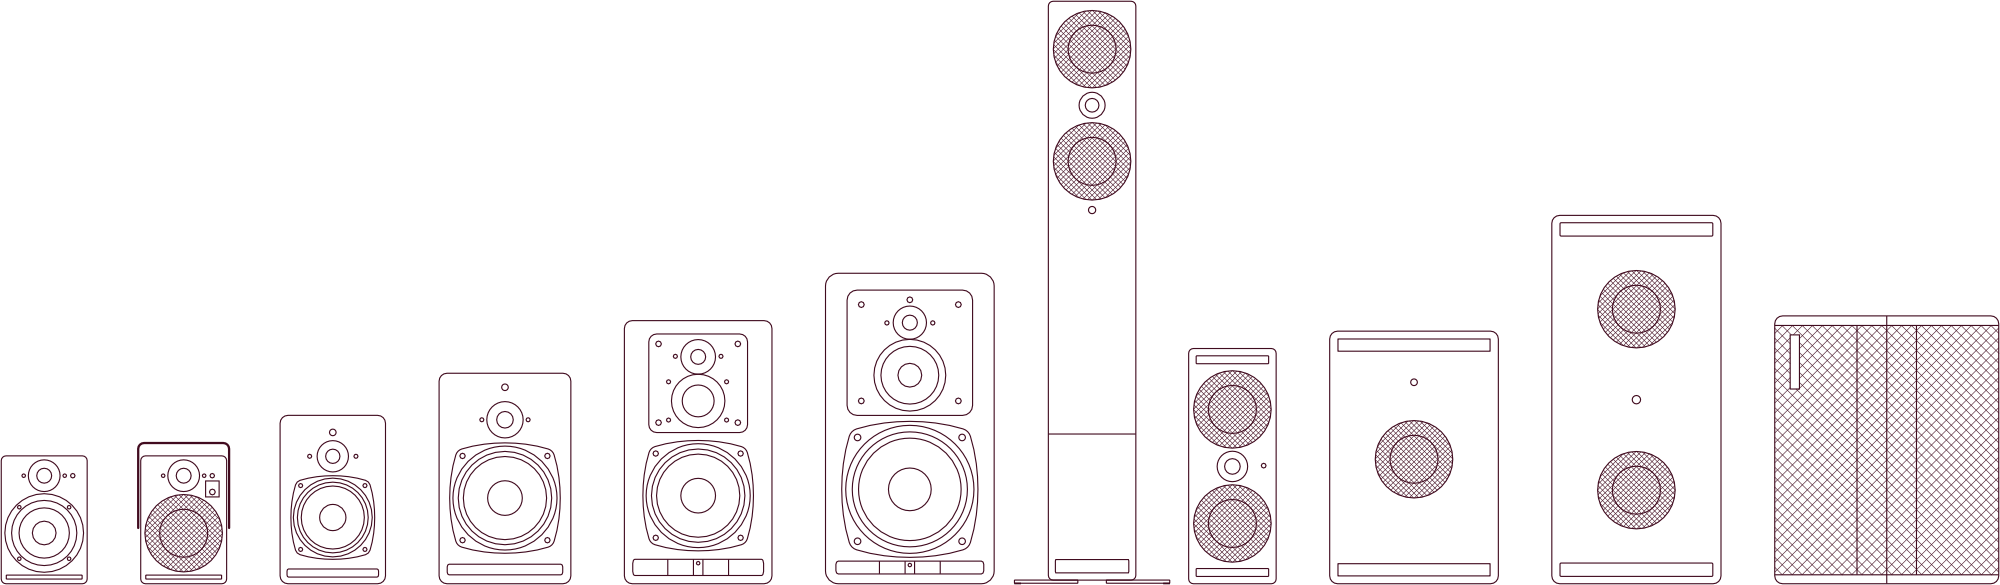 PSI Audio Studio Monitors and AVAA Family - Trademark